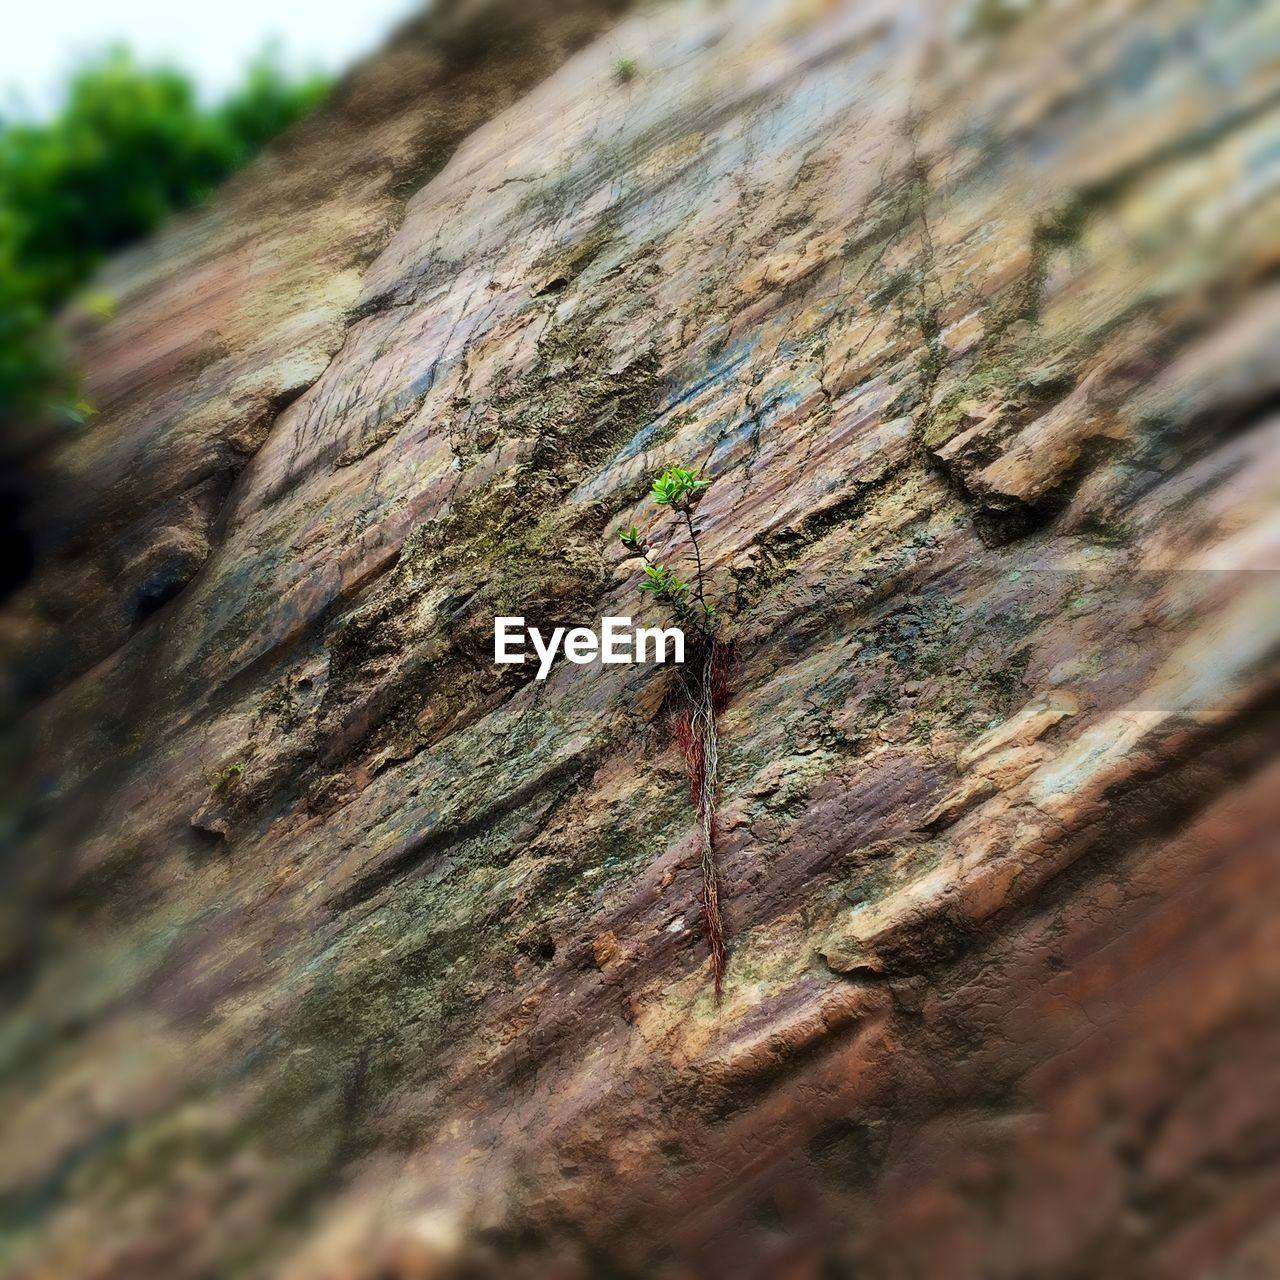 Low angle view of small plant growing on rock